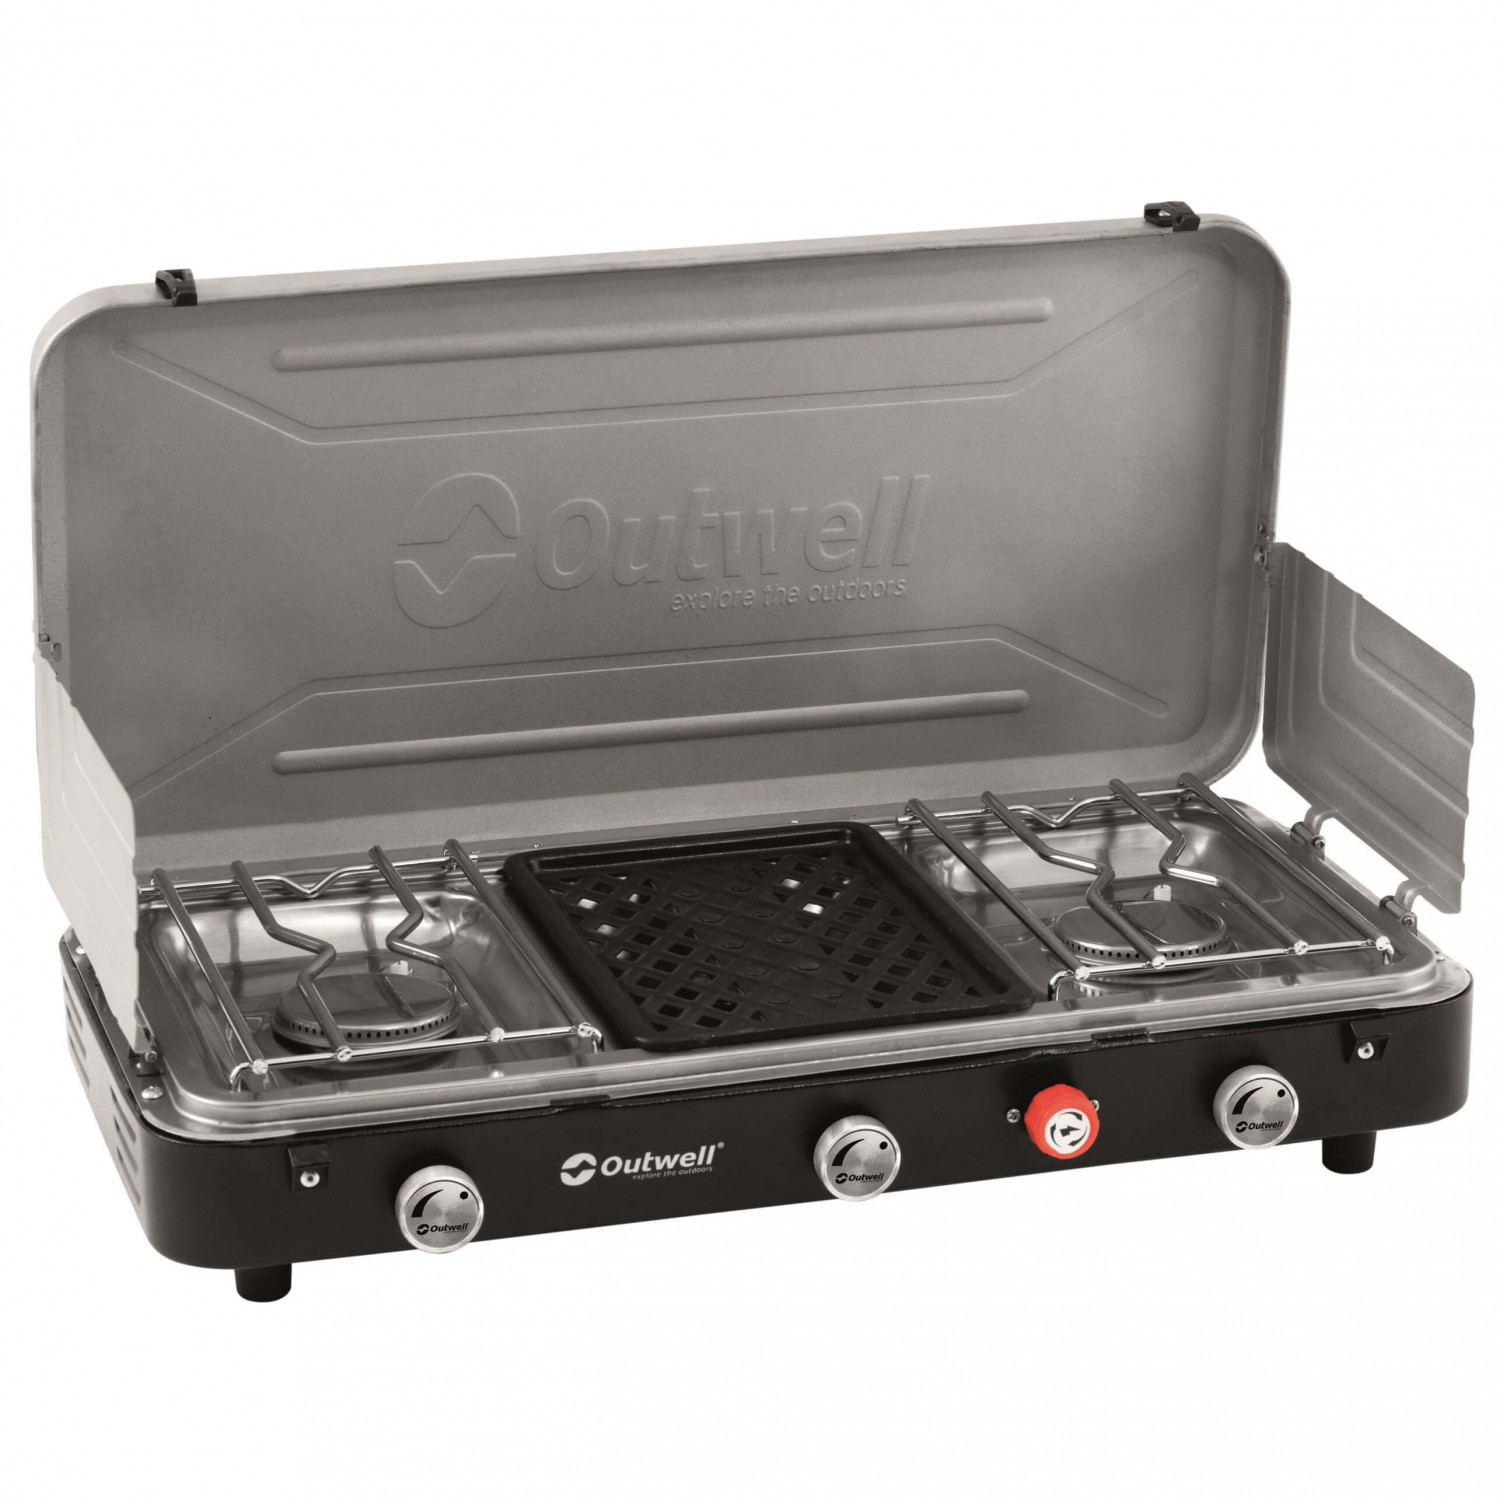 outwell chef cooker koch grillkombi 3 flammig gas stoves. Black Bedroom Furniture Sets. Home Design Ideas